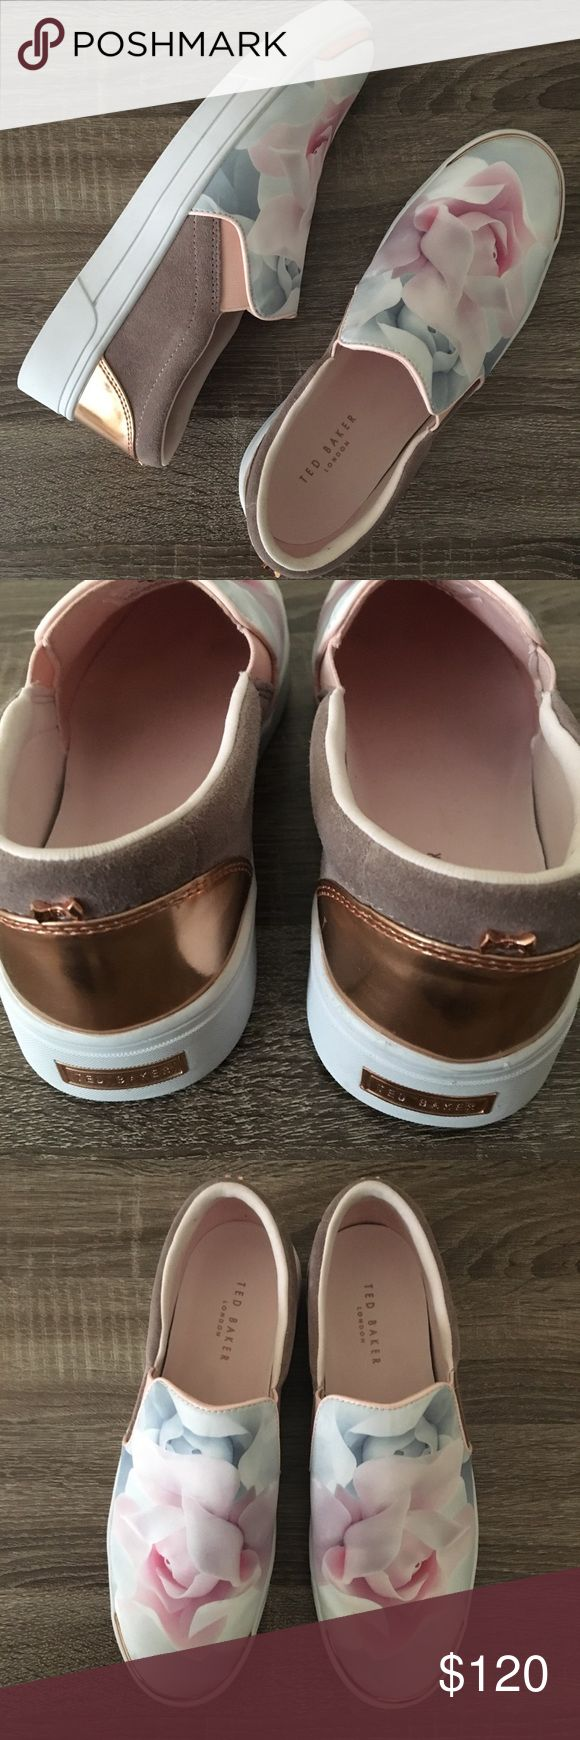 Ted Baker Slip On Sneakers Brand new. Color is porcelain rose. Suede with rose gold accents. Floral pattern. The size tag on these says 8 US/39 UK, but these are absolutely an 8.5 US. Very comfy just too big for me as I wear a true 8! Dress down with athleisure wear it dress up with leather leggings! Ted Baker Shoes Sneakers